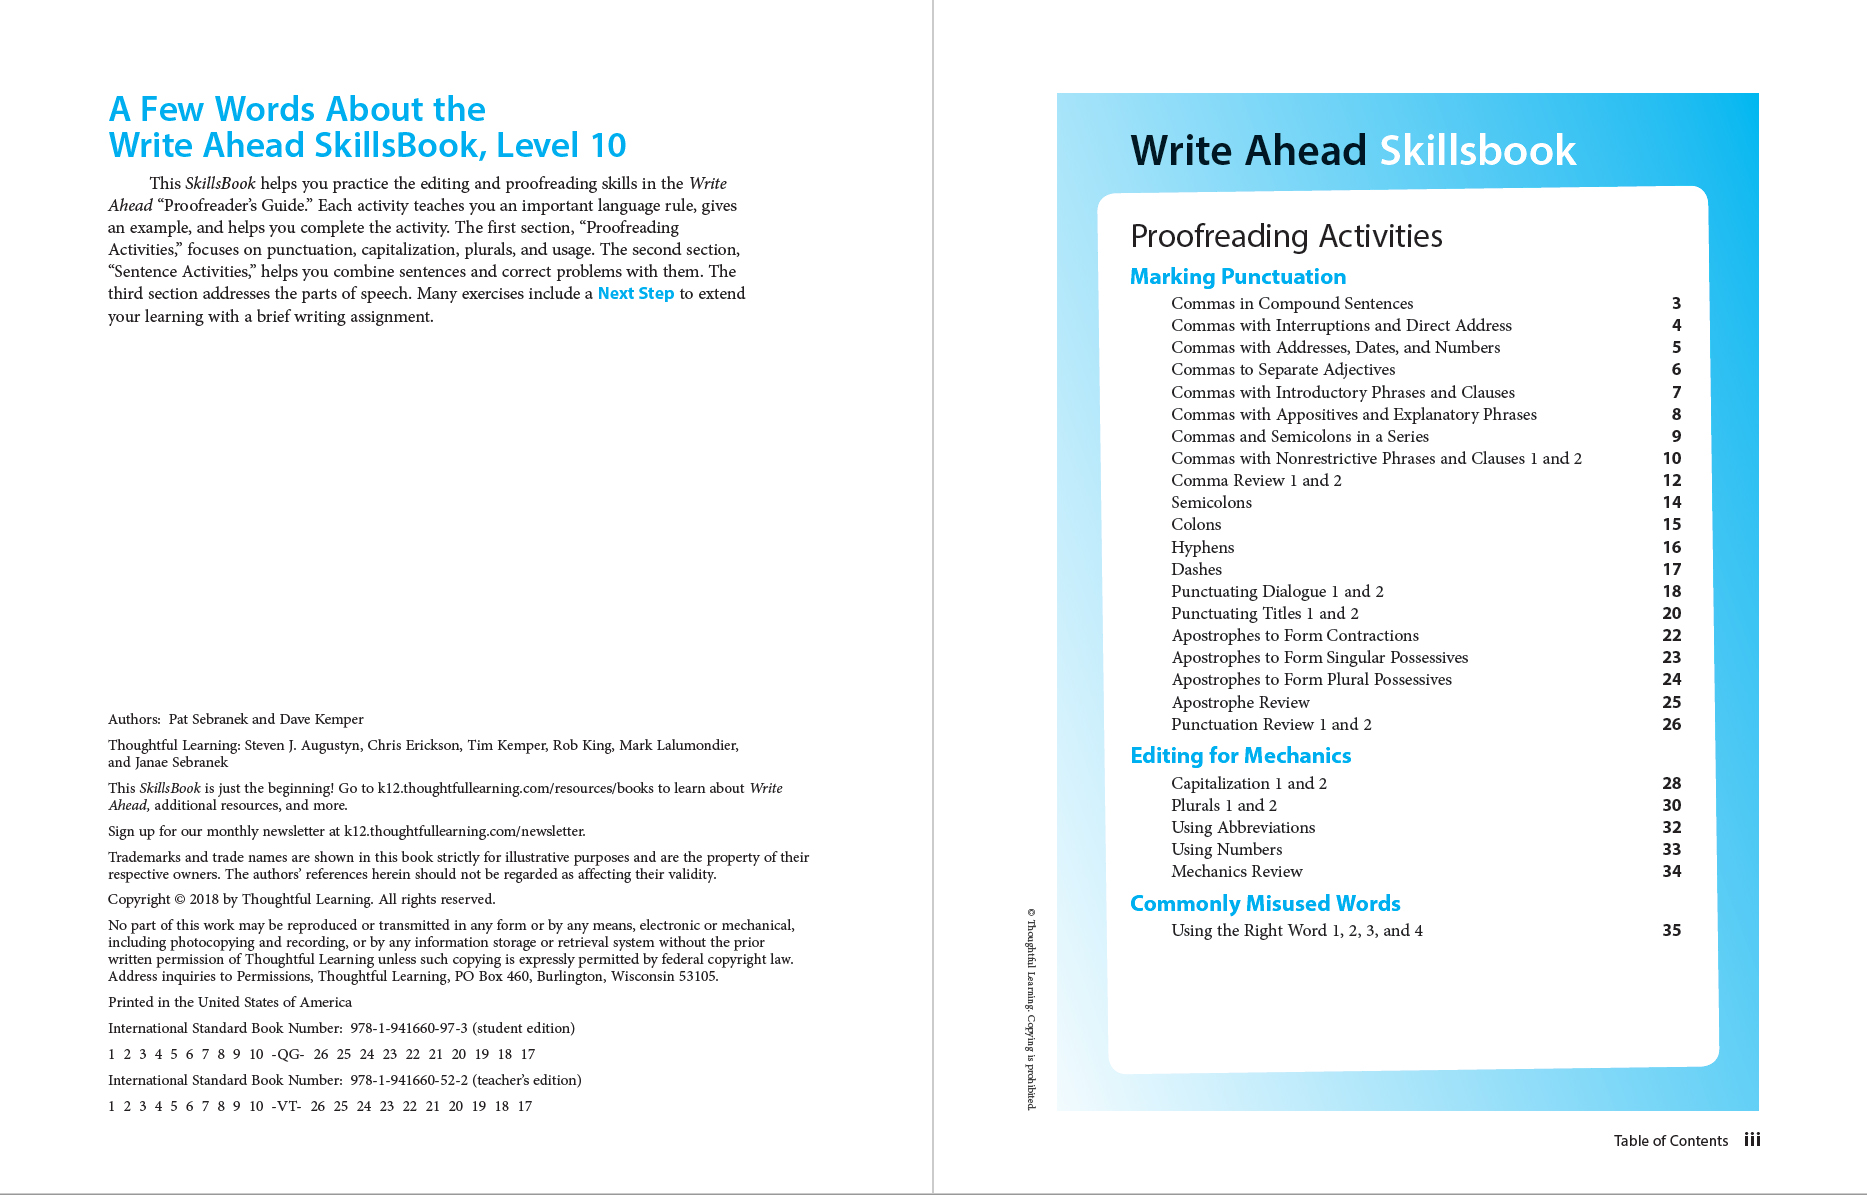 Write Ahead SkillsBook TG page i